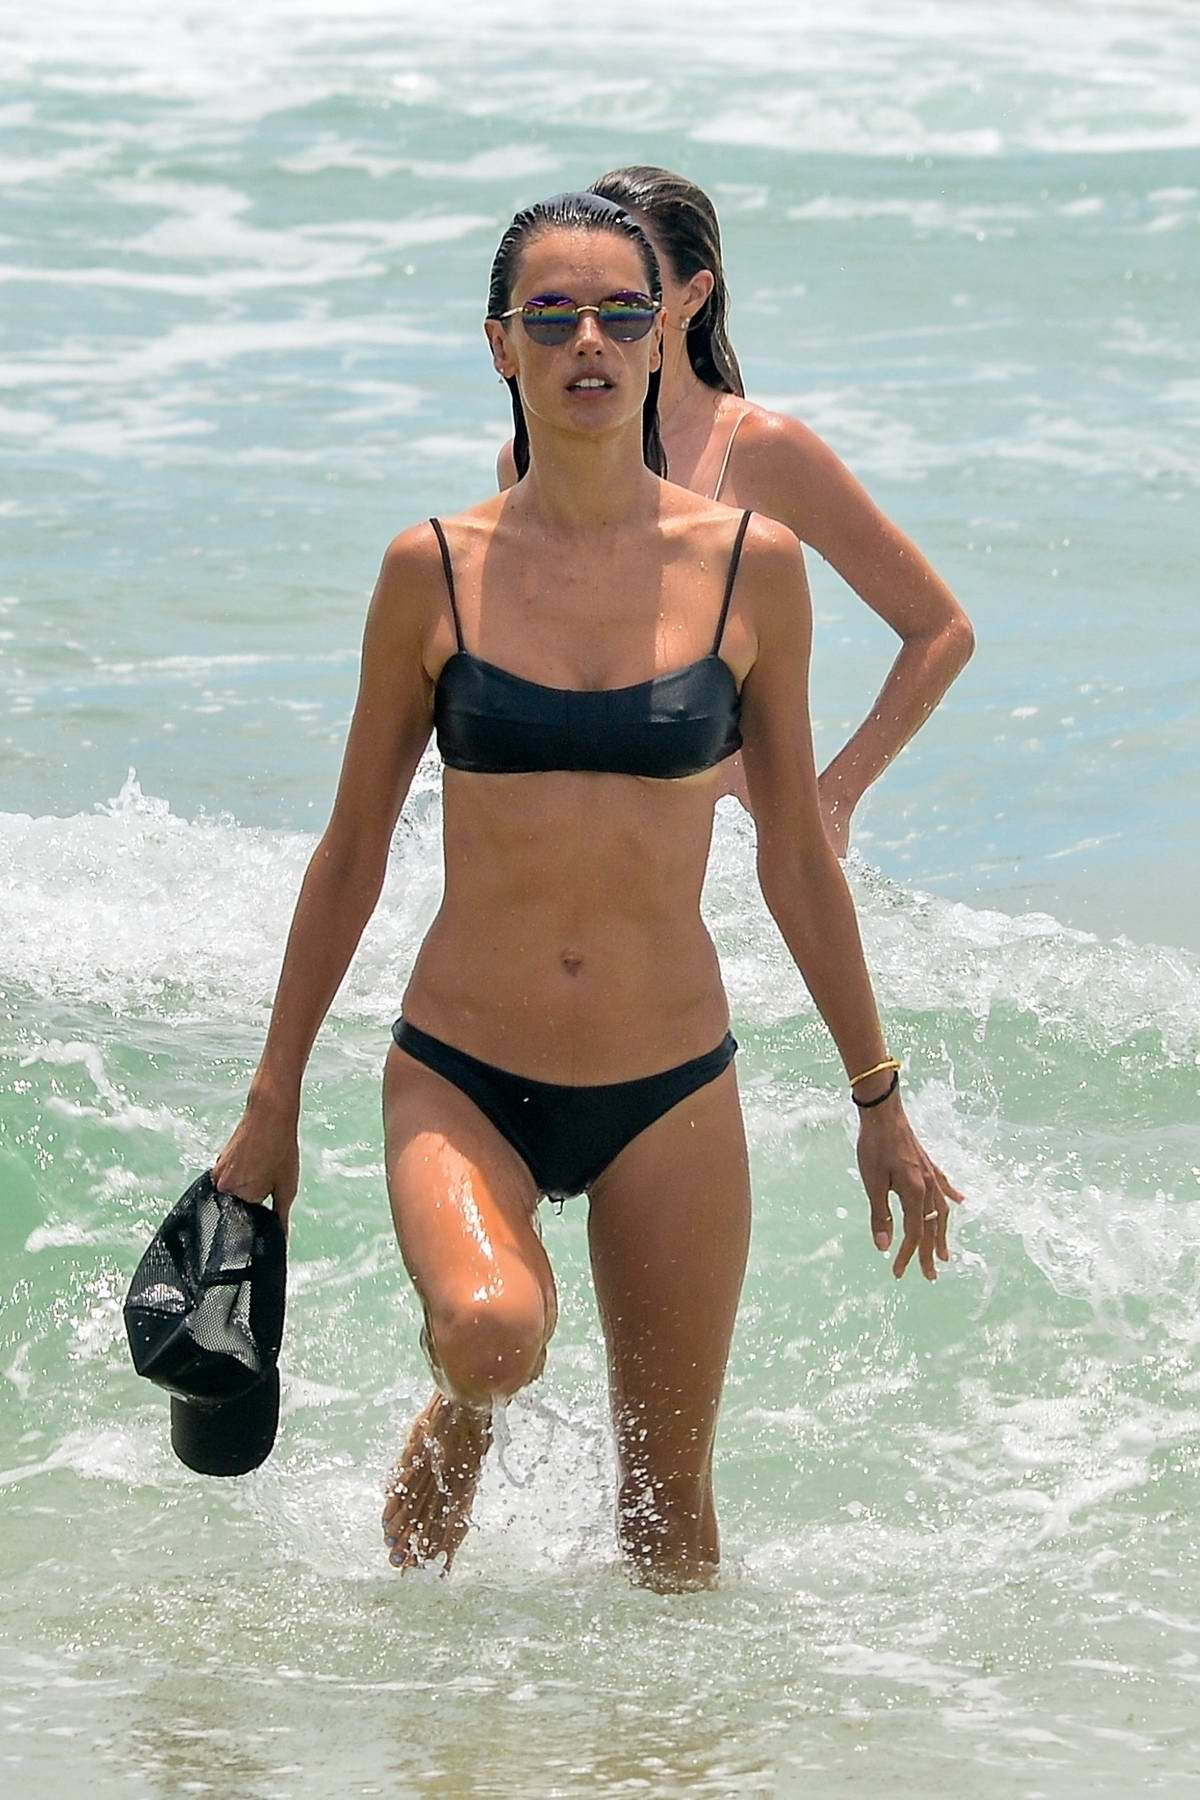 Alessandra Ambrosio shows off her toned physique in a black bikini as she gets in a beach workout in Florianopolis, Brazil